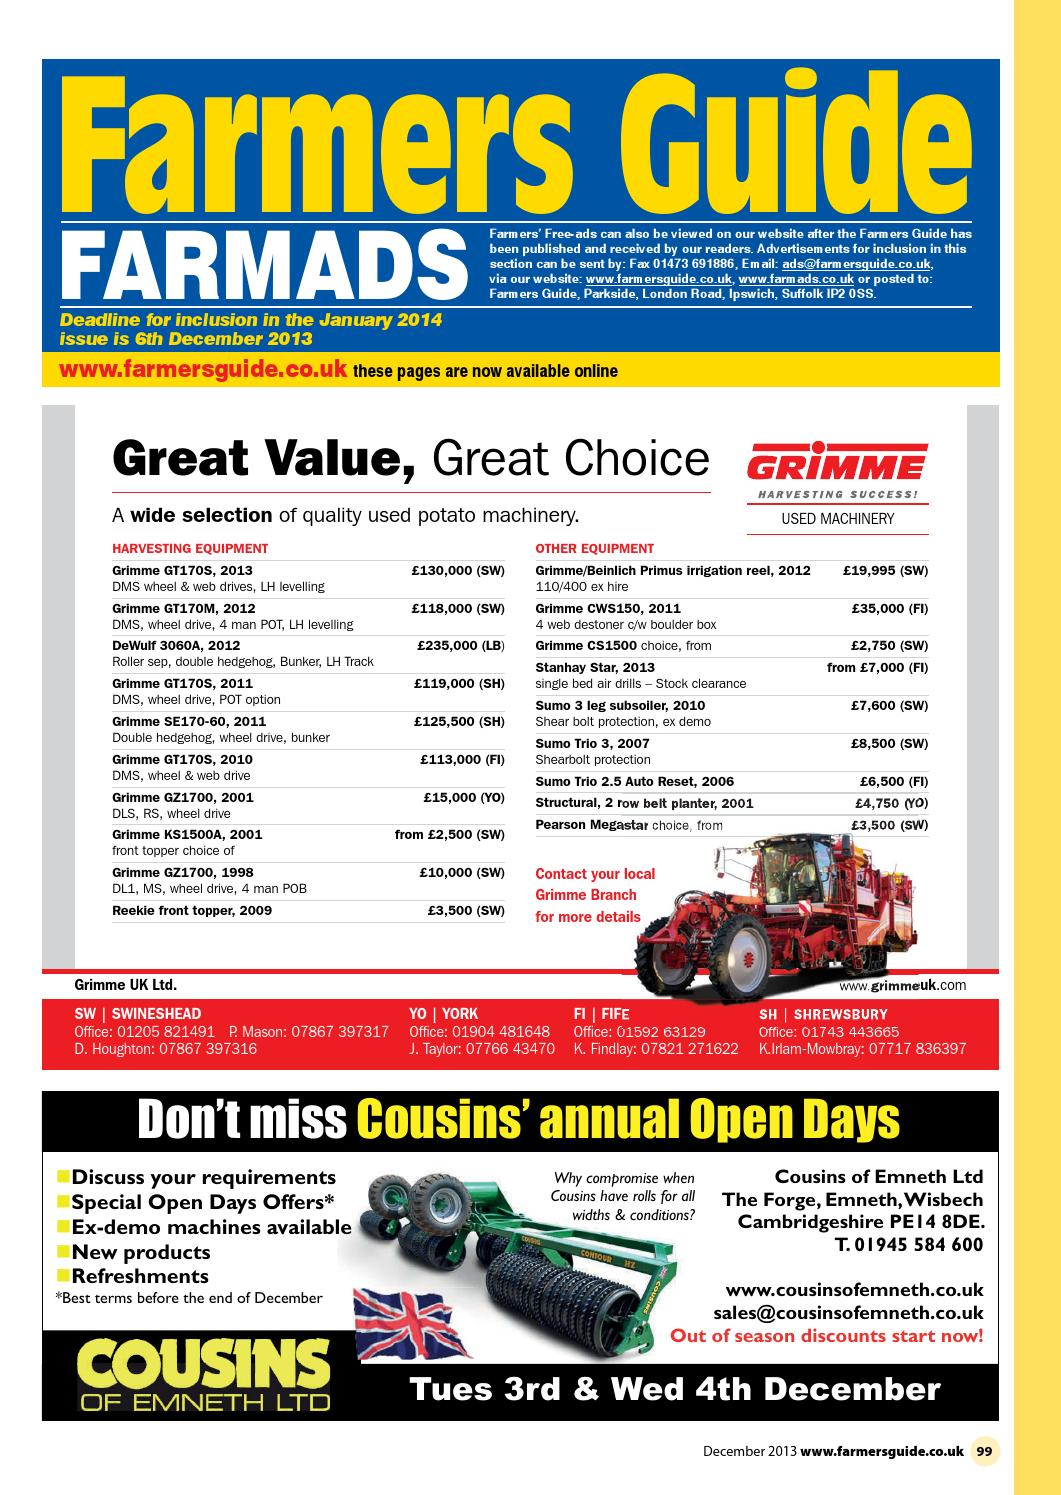 Farmers Guide classified section - December 2013 by Farmers Guide - issuu